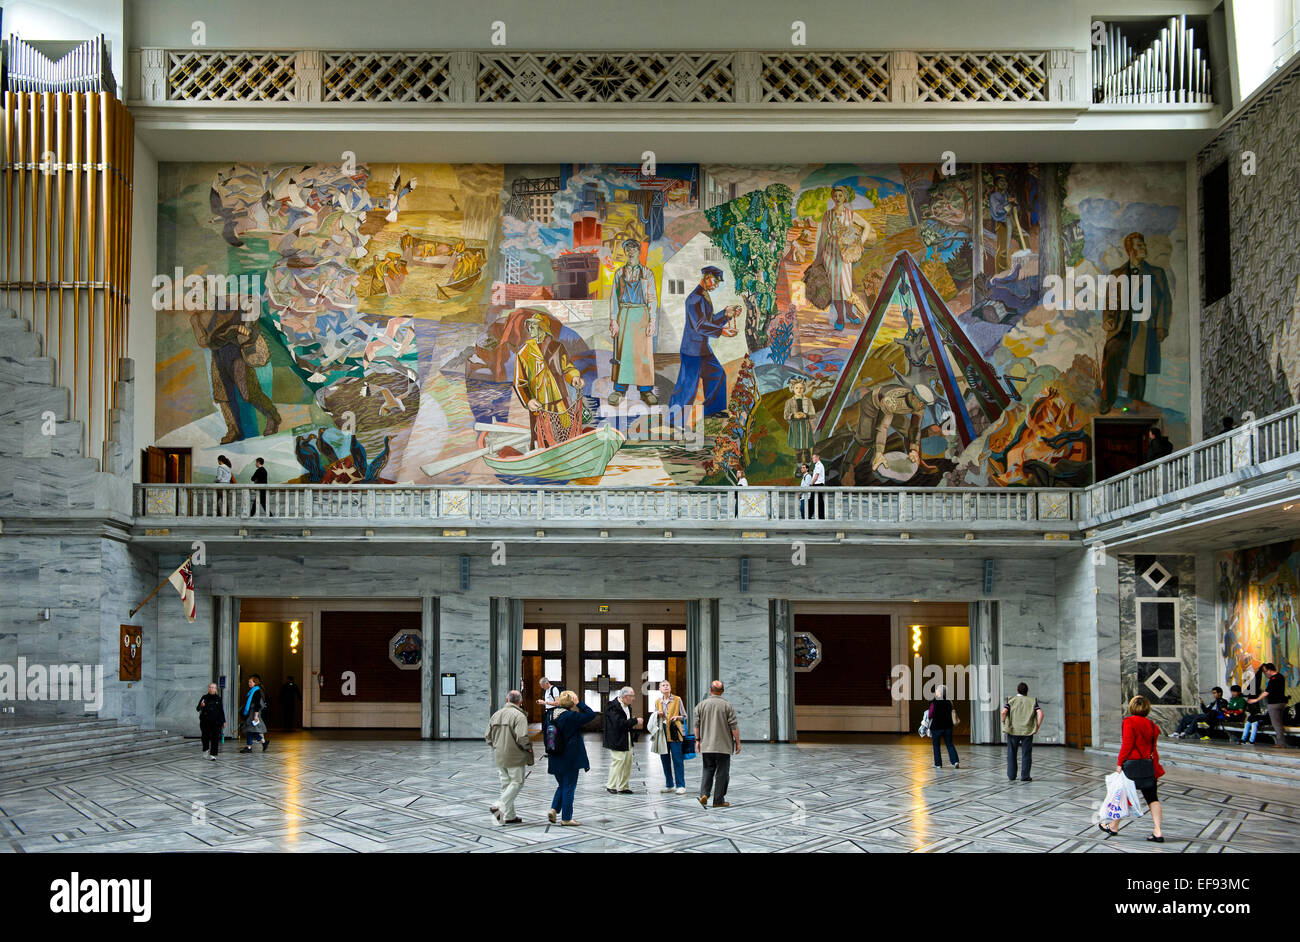 "Mural""Folket i arbeid og fest"" by Alf Rolfsen at the North wall of the Central Hall of the Oslo City Hall, Oslo, Stock Photo"